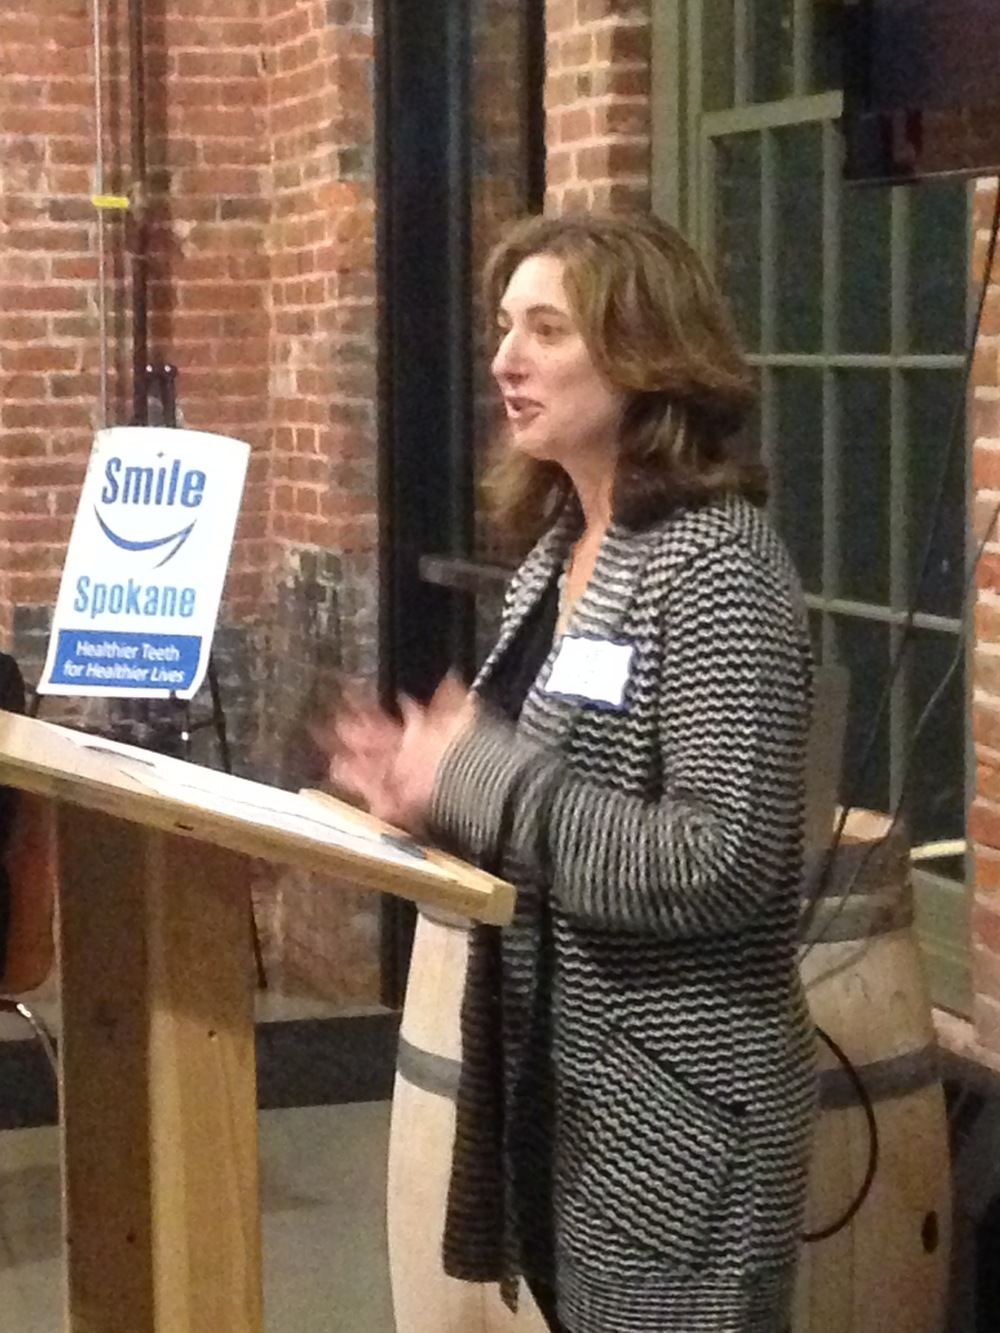 Washington Dental Service Foundation Deputy Director Diane Oakes lauds Spokane's focus on oral health.